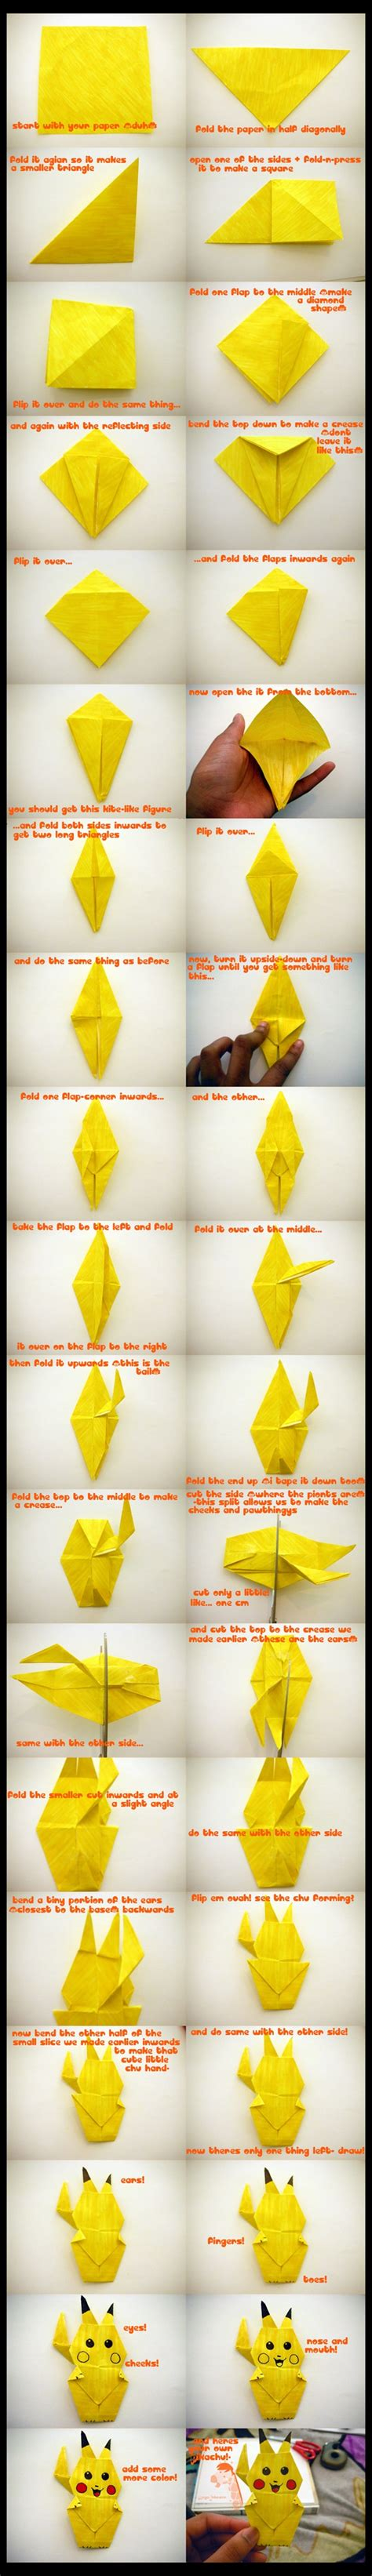 how to make an origami pikachu step by step how to make an origami pikachu bit rebels